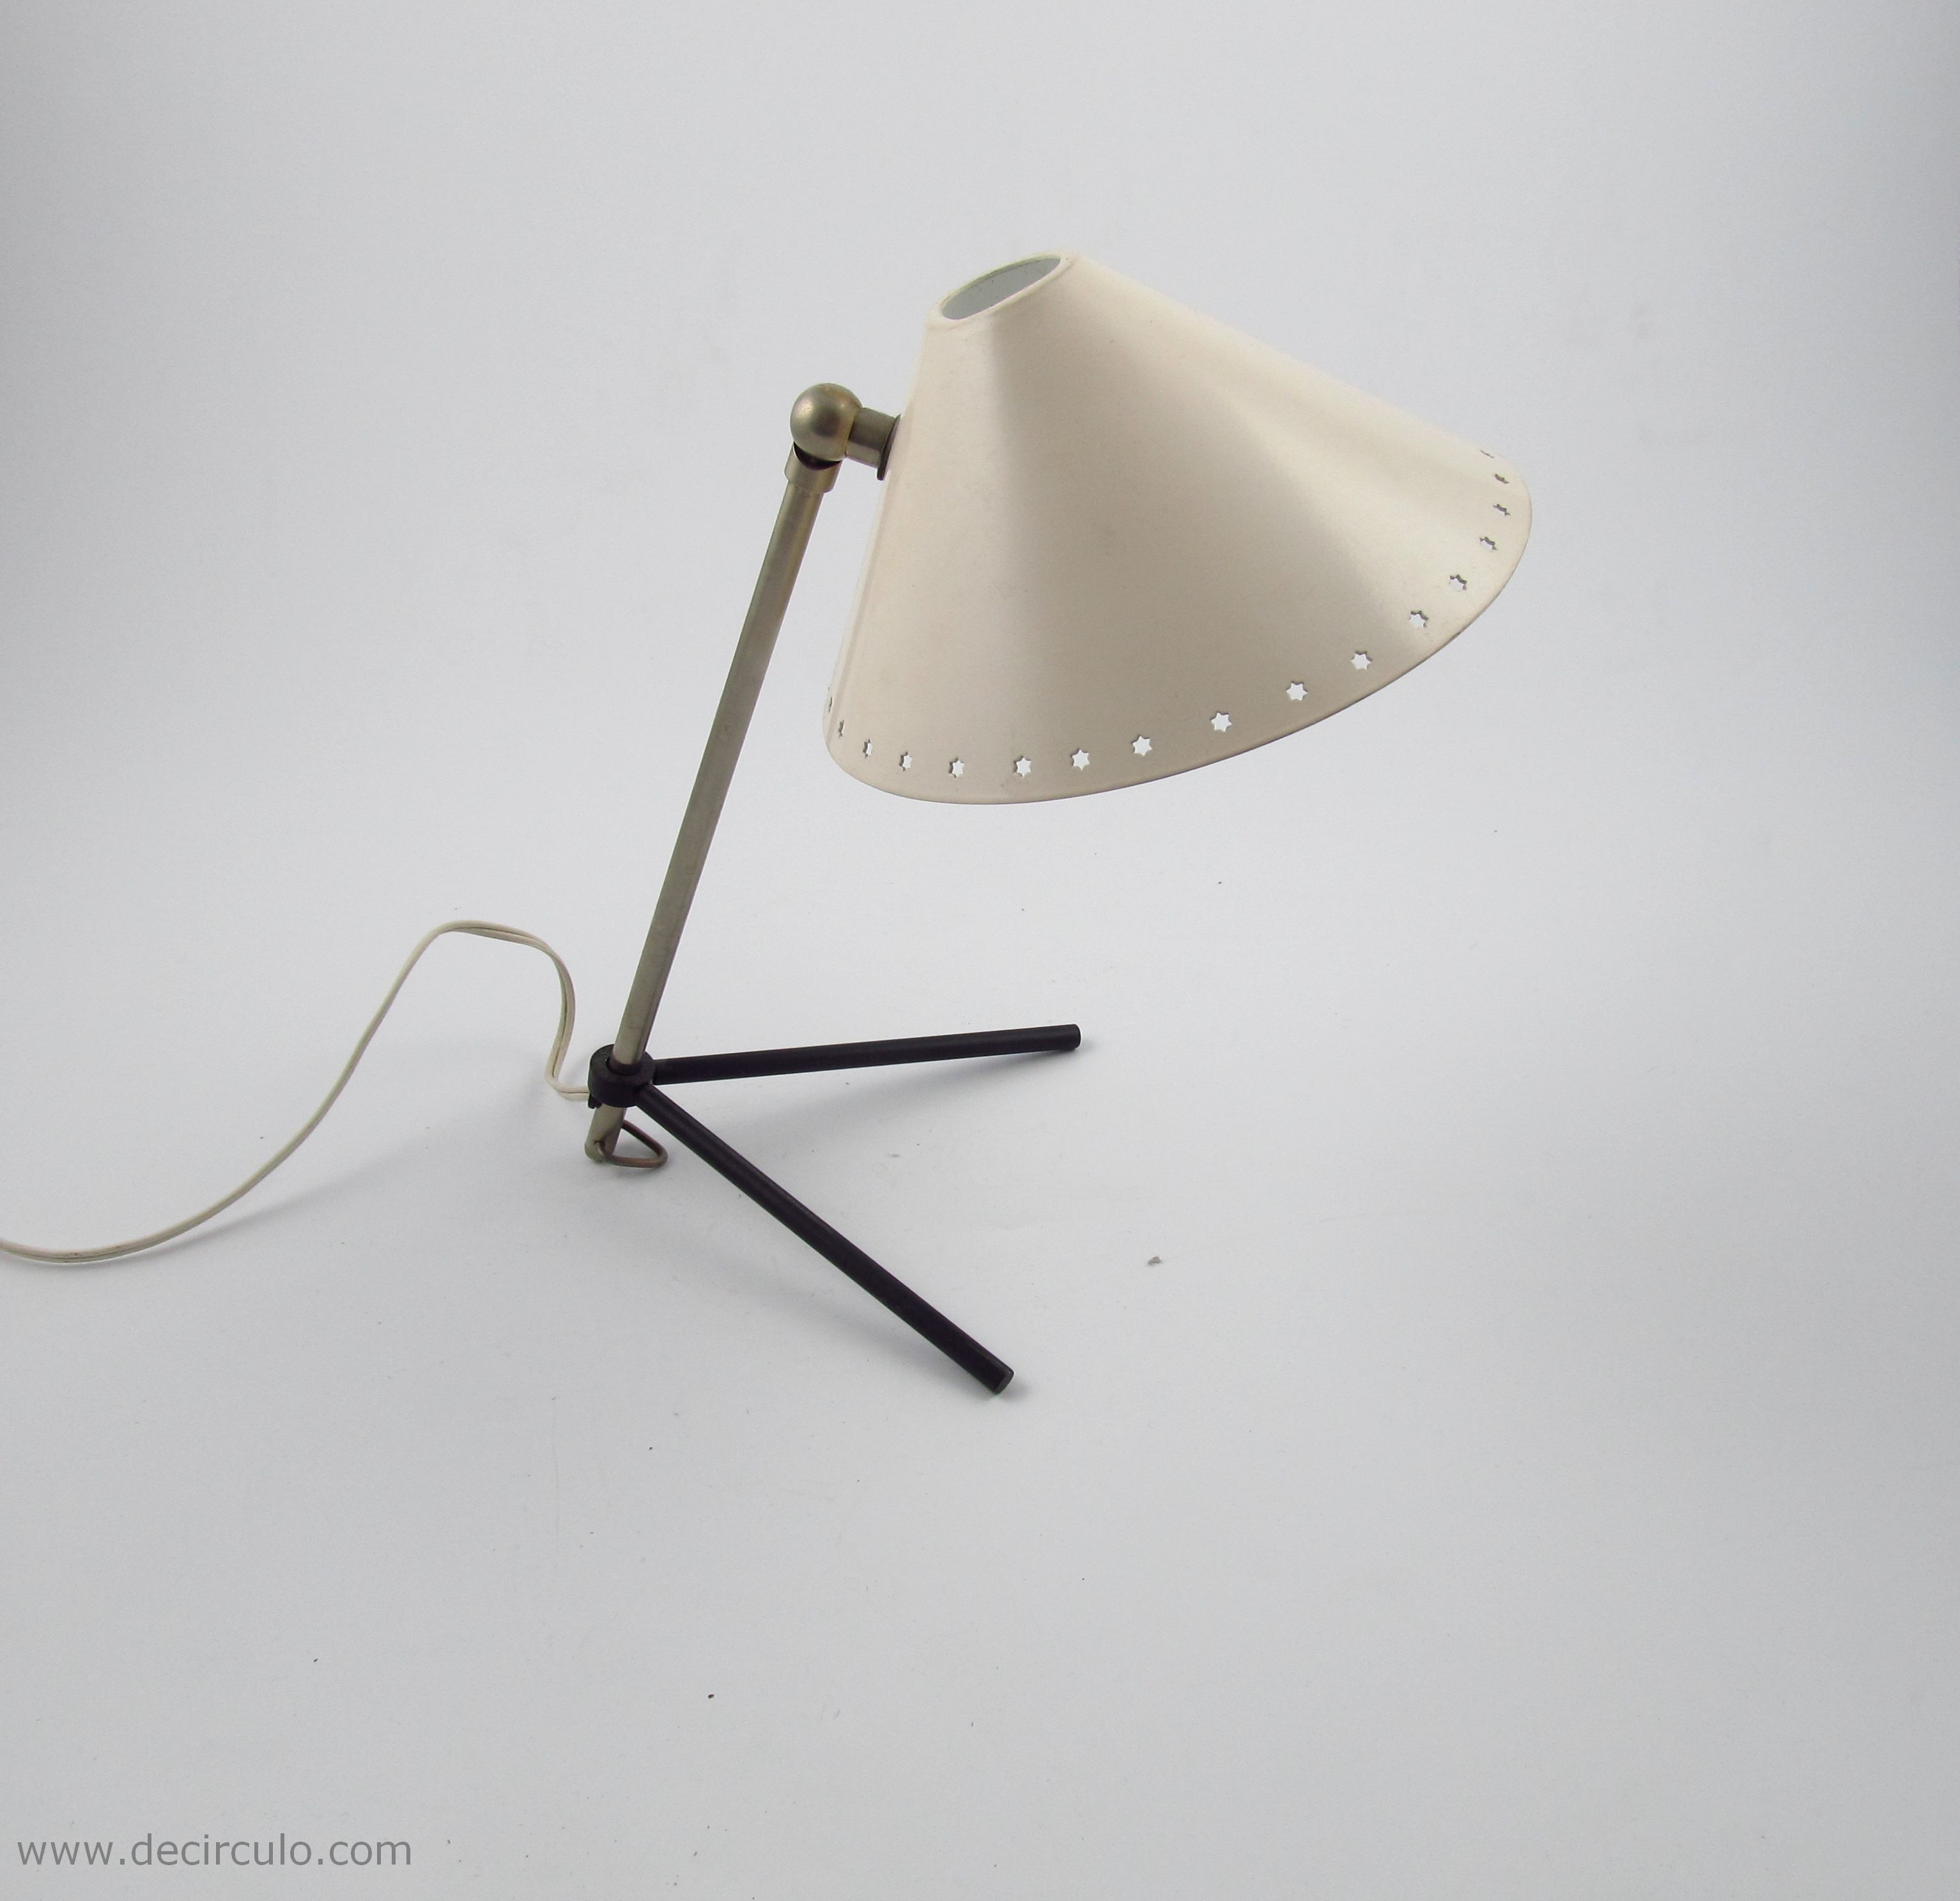 Pinocchio Pinokio White Busquet Hala Industrial Table Lamp